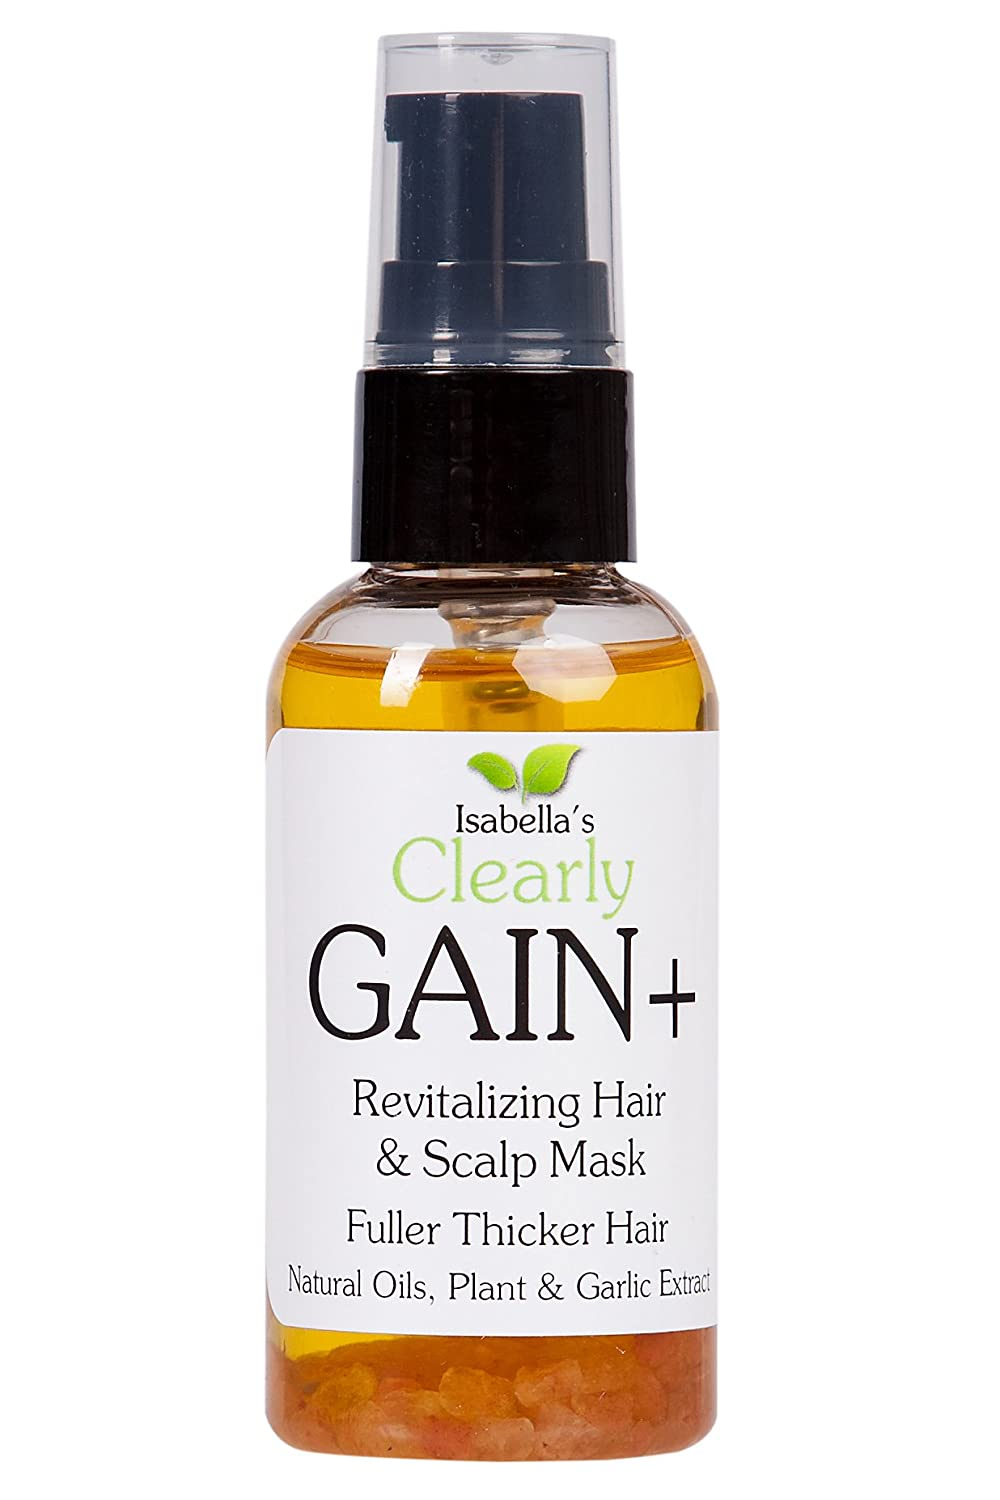 Isabella's Clearly GAIN+. Best Natural Hair Regrowth Treatment and Thickener. Stop Hair Loss, Thinning Hair, Strengthen Roots, Grow Hair Fast. Powerful Mask with Jojoba, Garlic, Castor Oil, Clary Sage, Stinging Nettle, Vitamins. Men and Women (2 Oz) Isabel